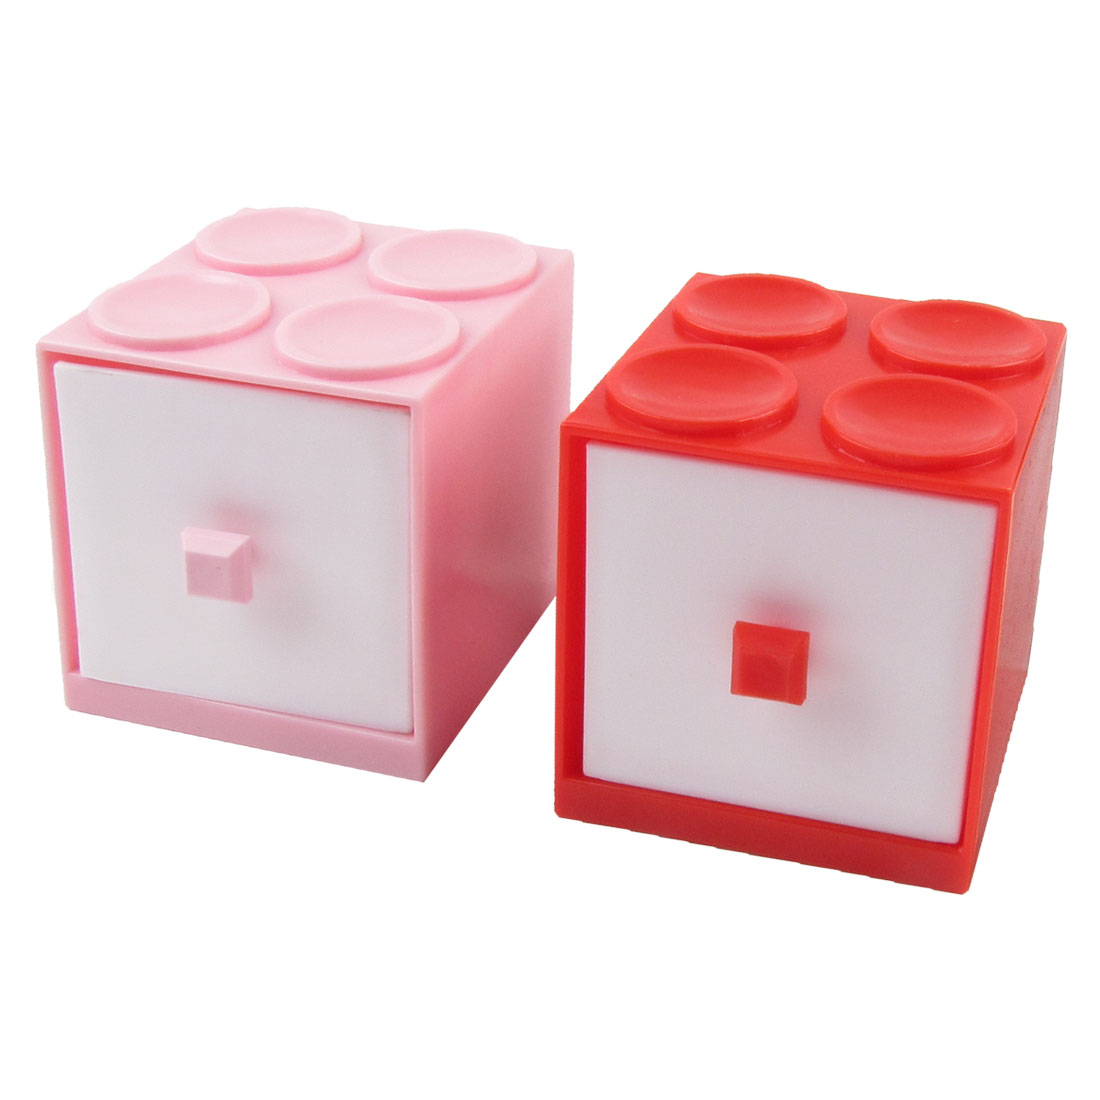 Hard Plastic Building Block 2 Layer Mini Drawer Cabinet Storage Holder Pink Red